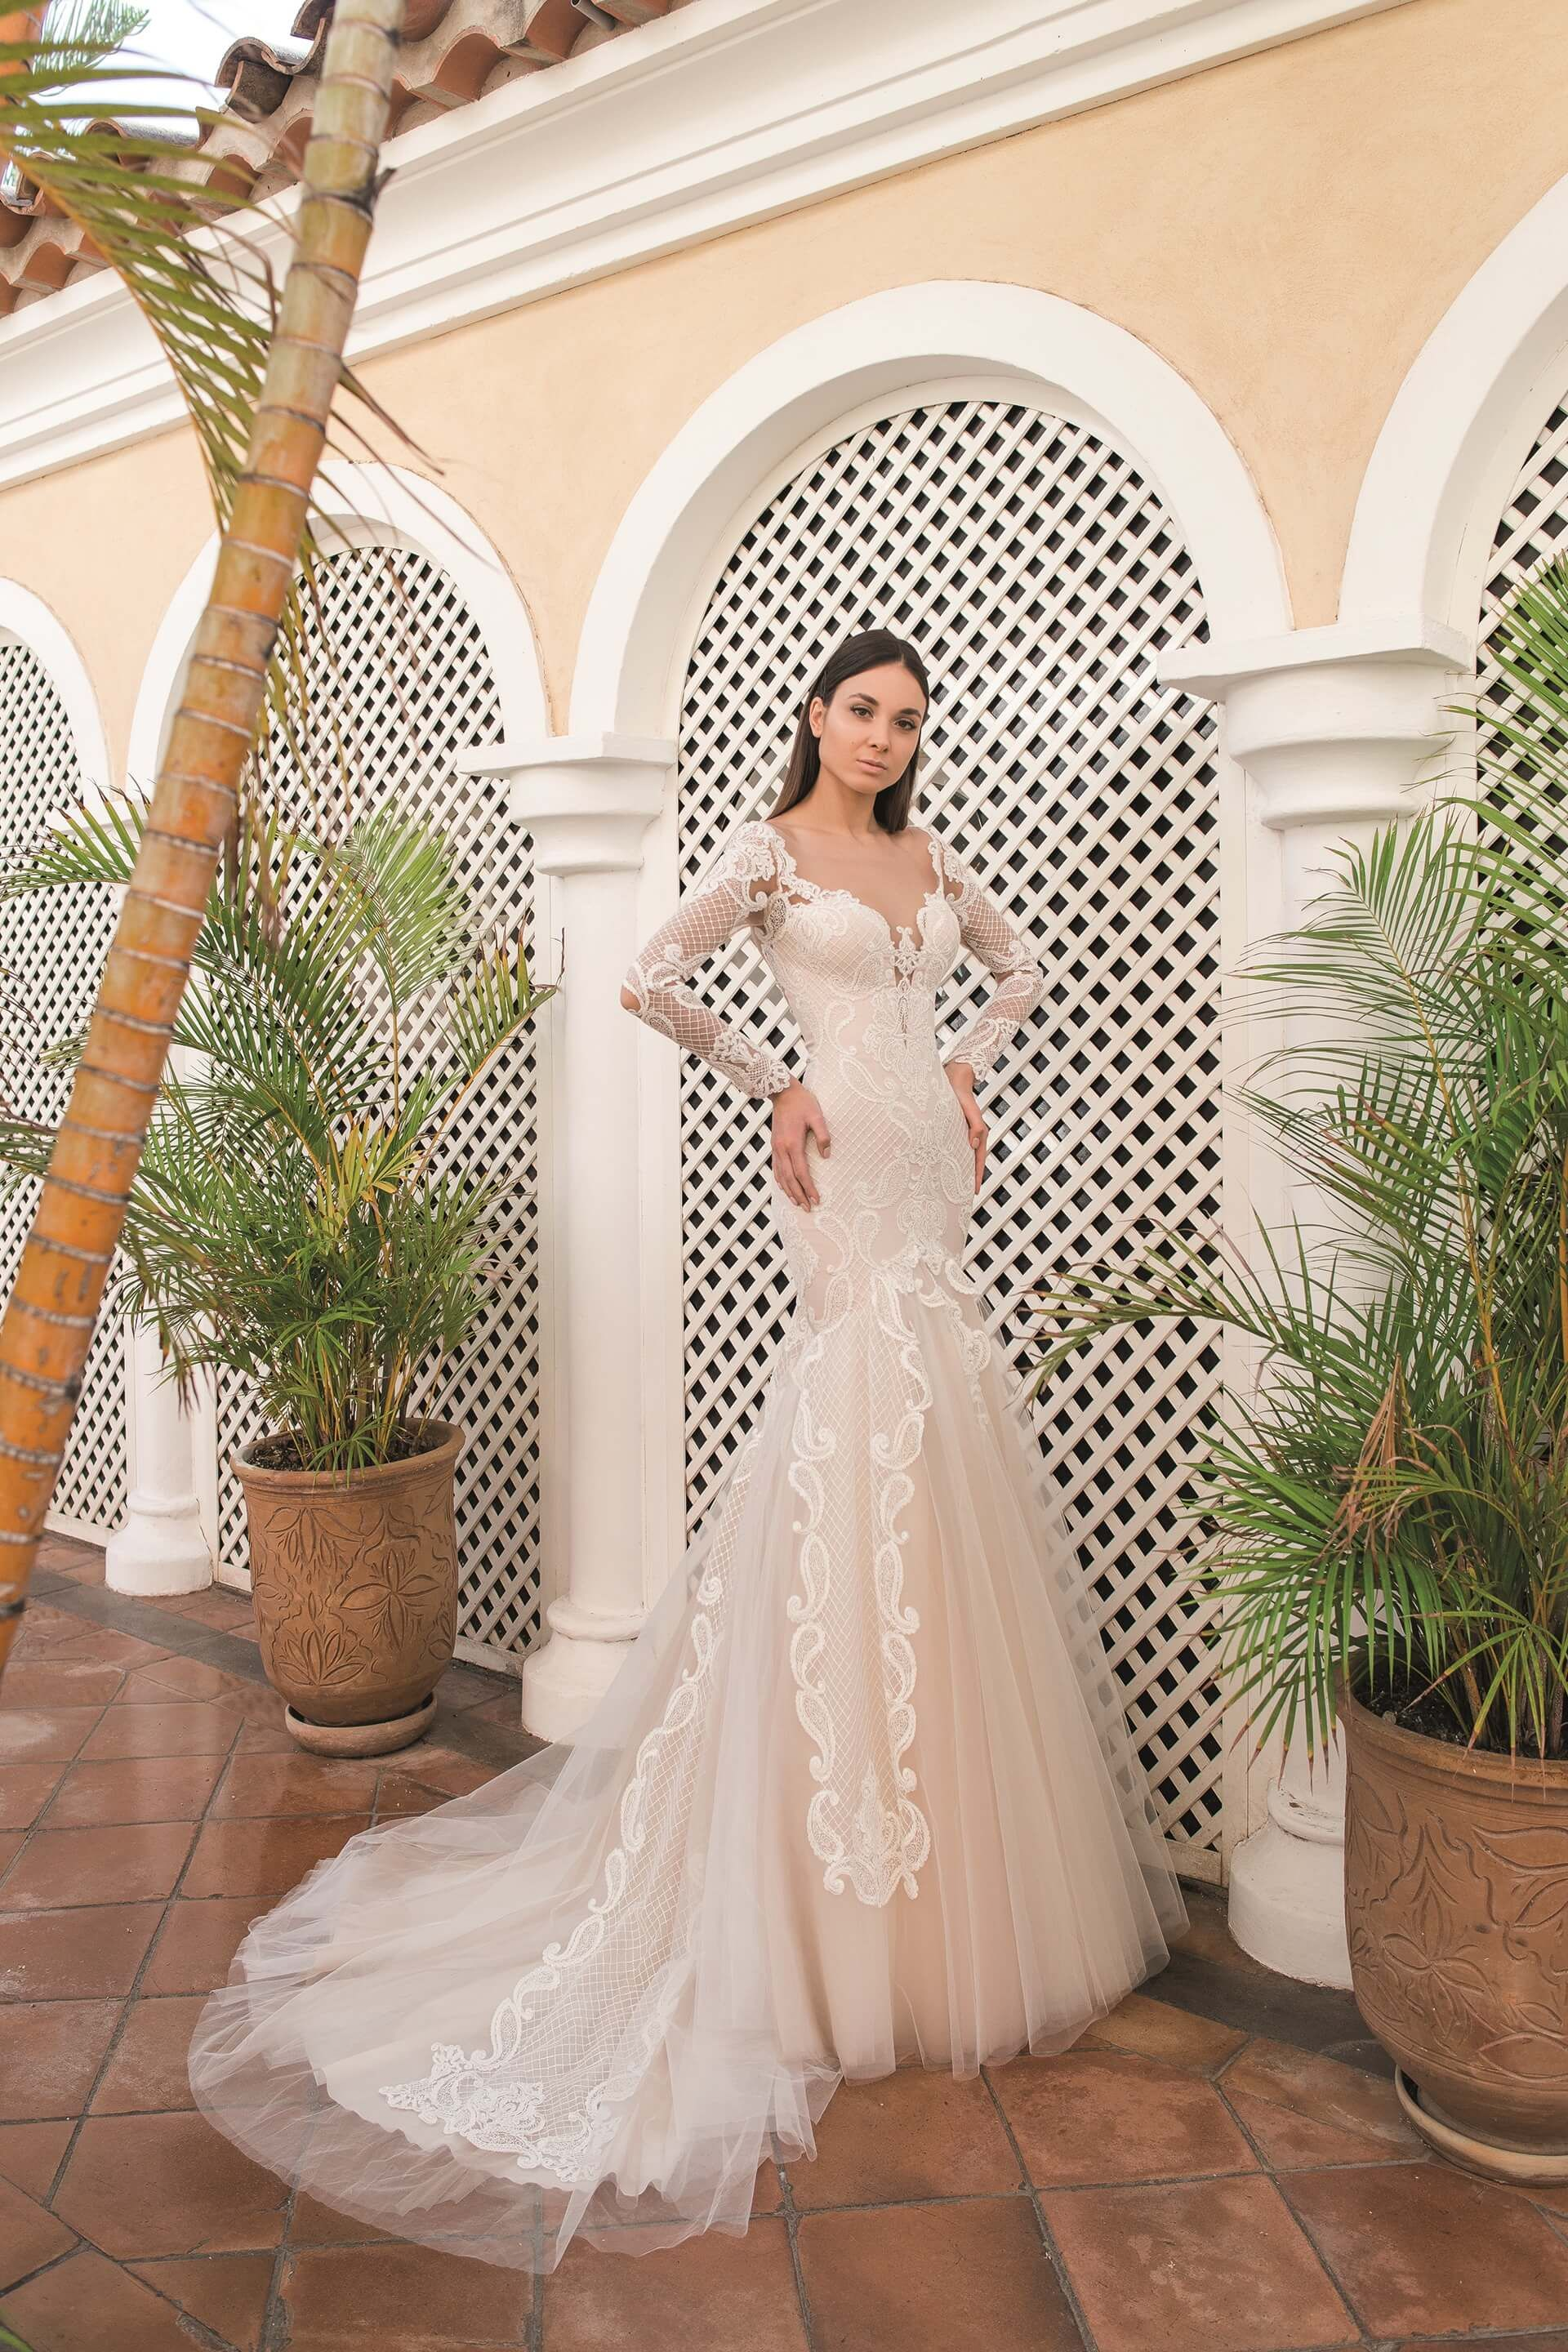 e57e8168d53 GUSTAVA wedding dress by OKSANA MUKHA ONLY at Charmé Gaby Bridal Gown  boutique Tampa Bay FL